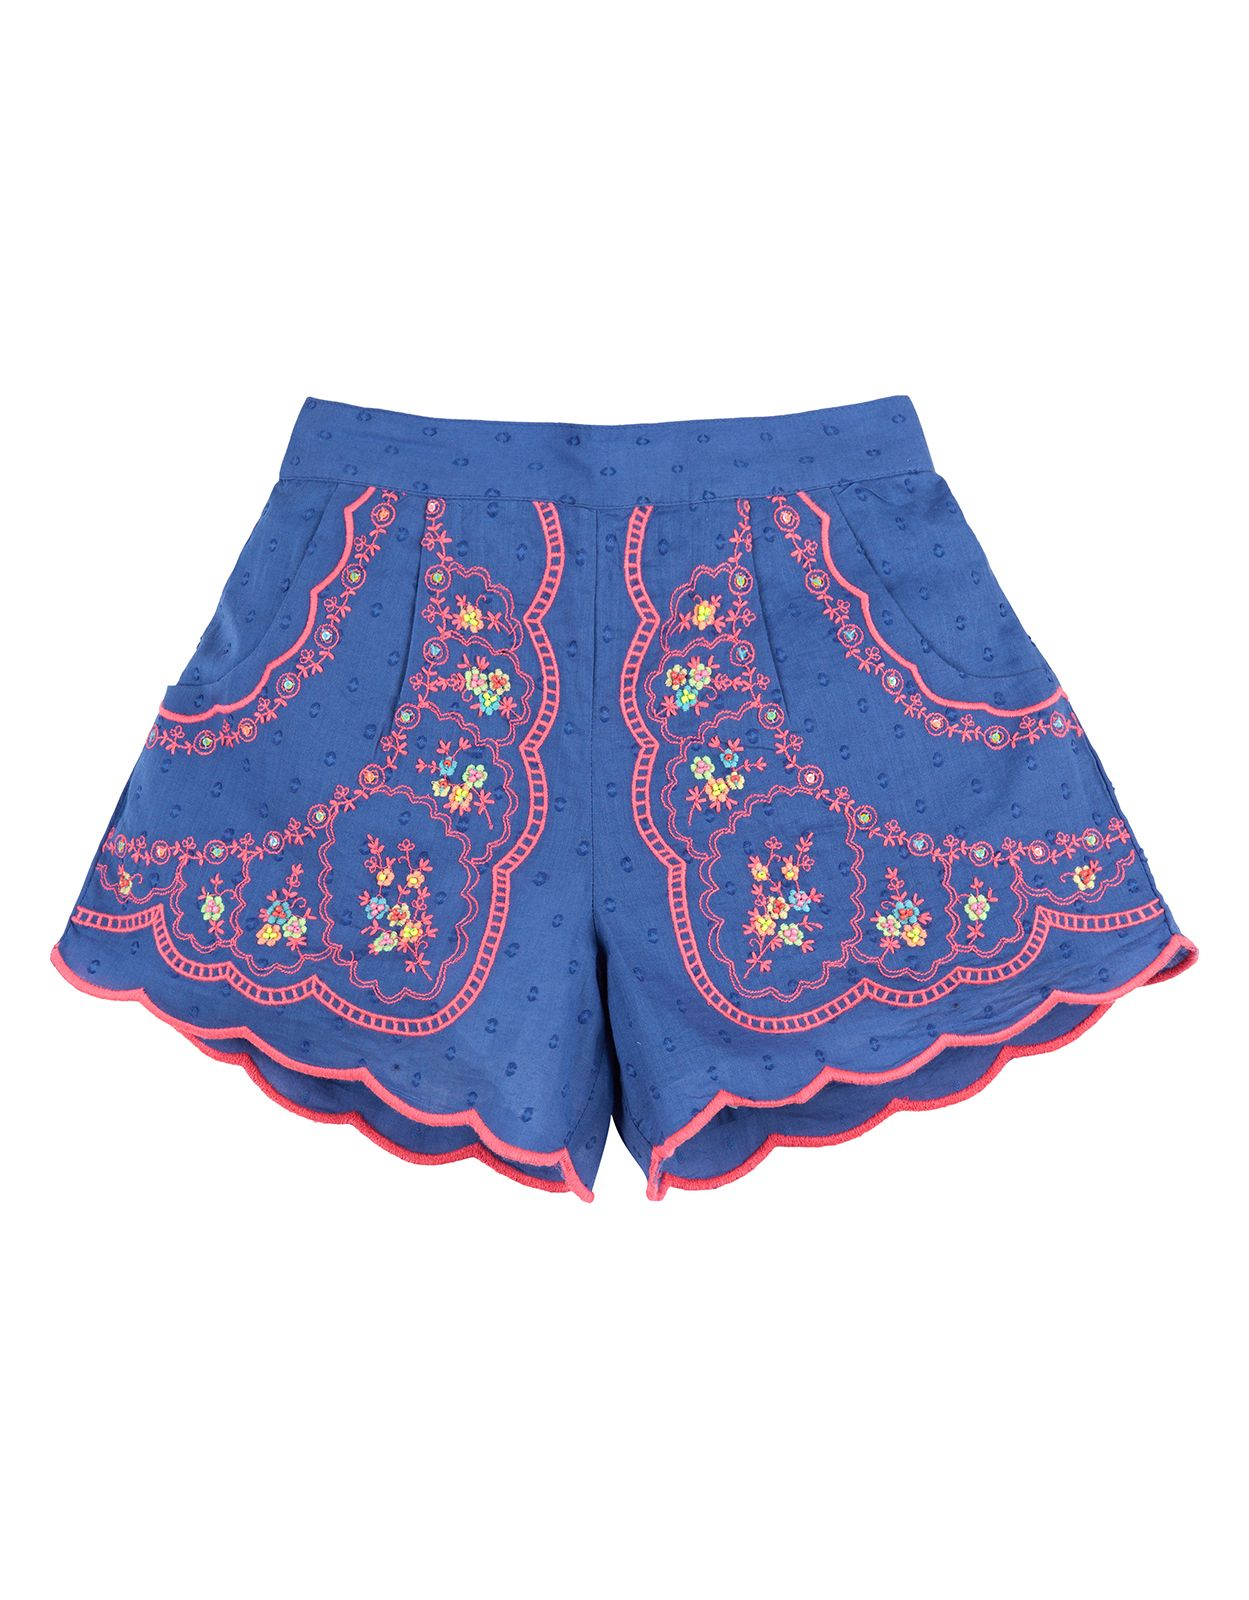 Eddie Short | Purple | Monsoon | Girls kiddie stuff | Pinterest ...